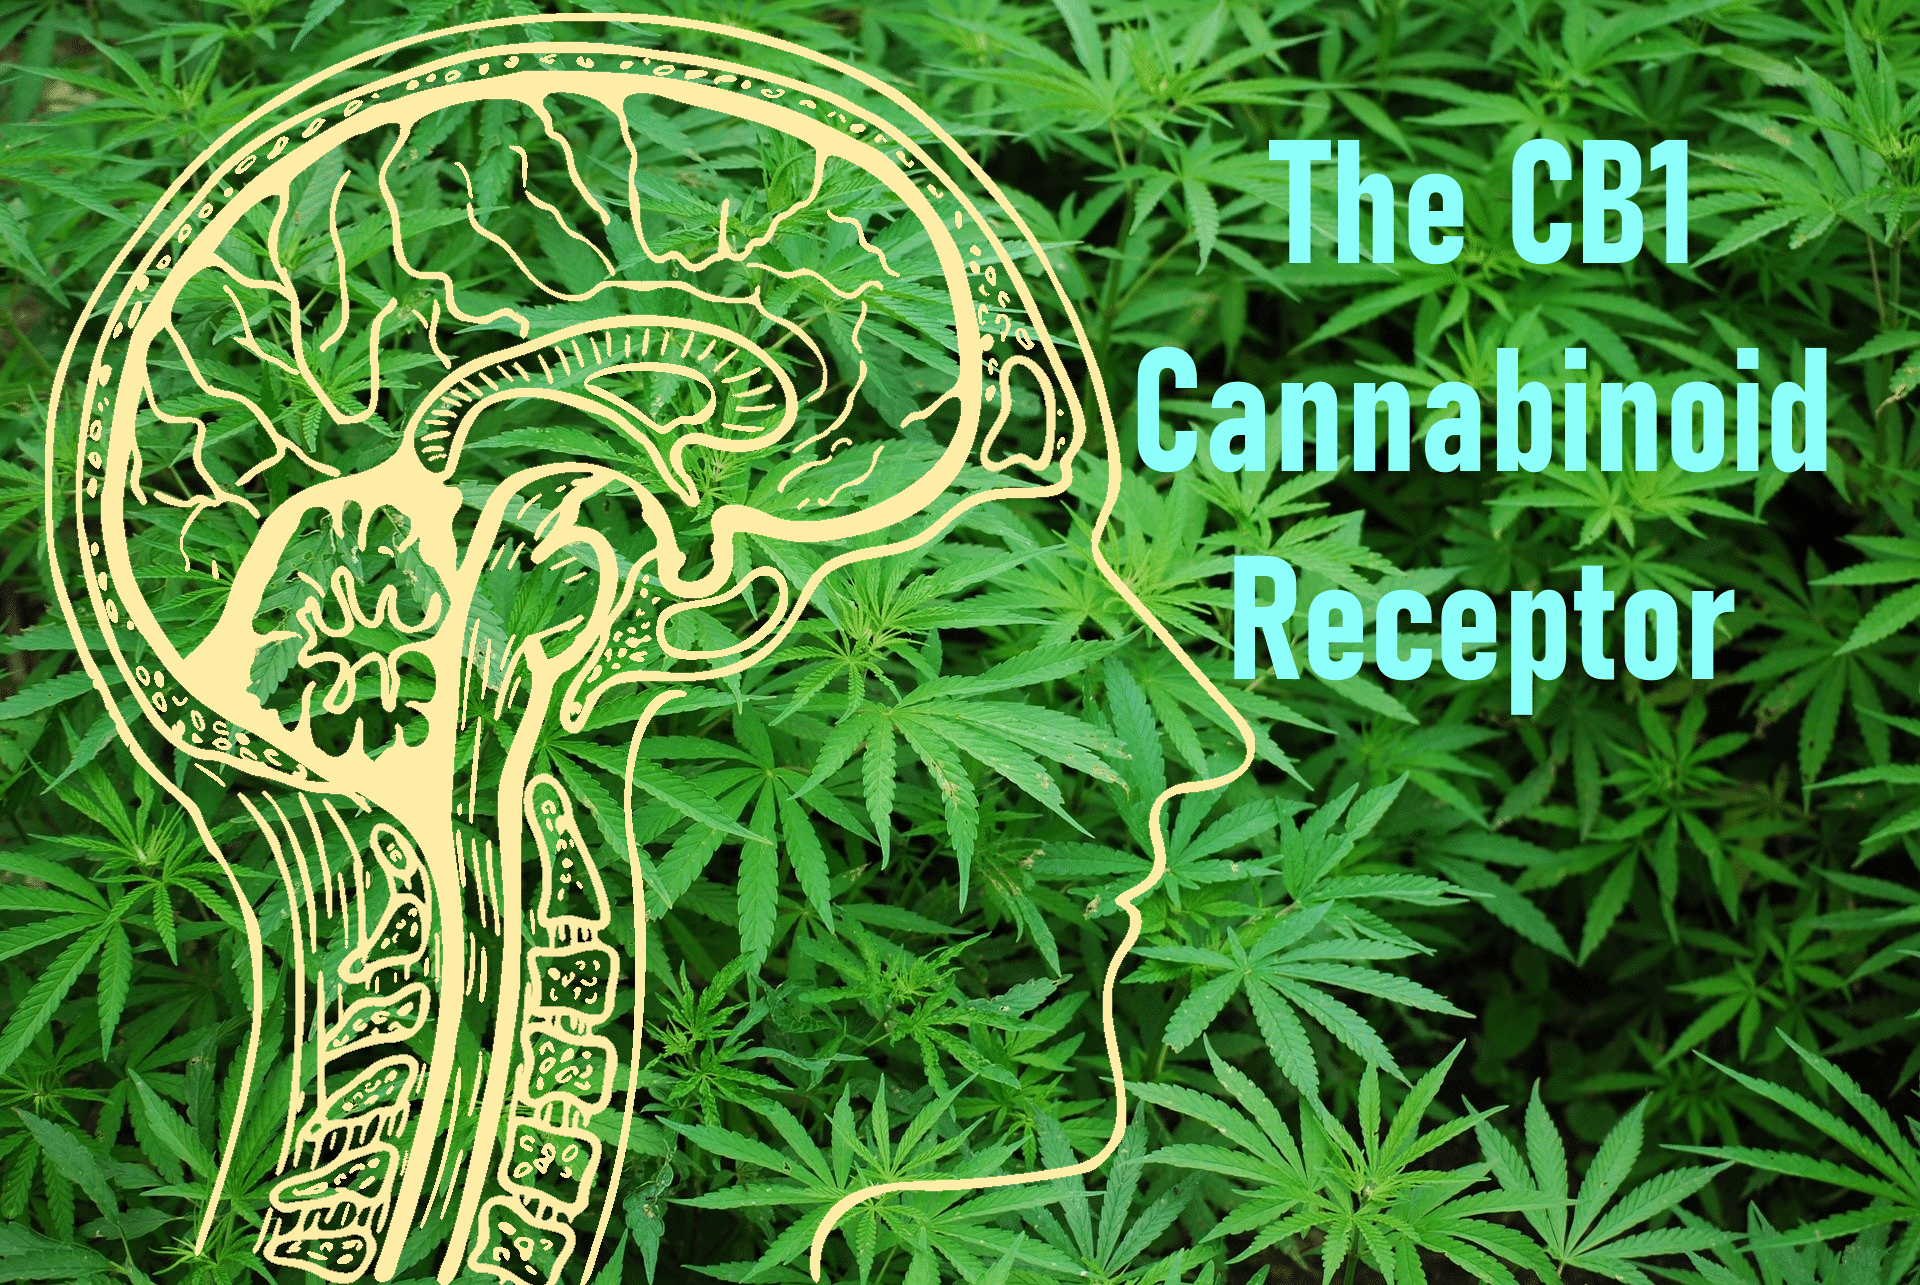 the cb1 cannabinoid receptor title